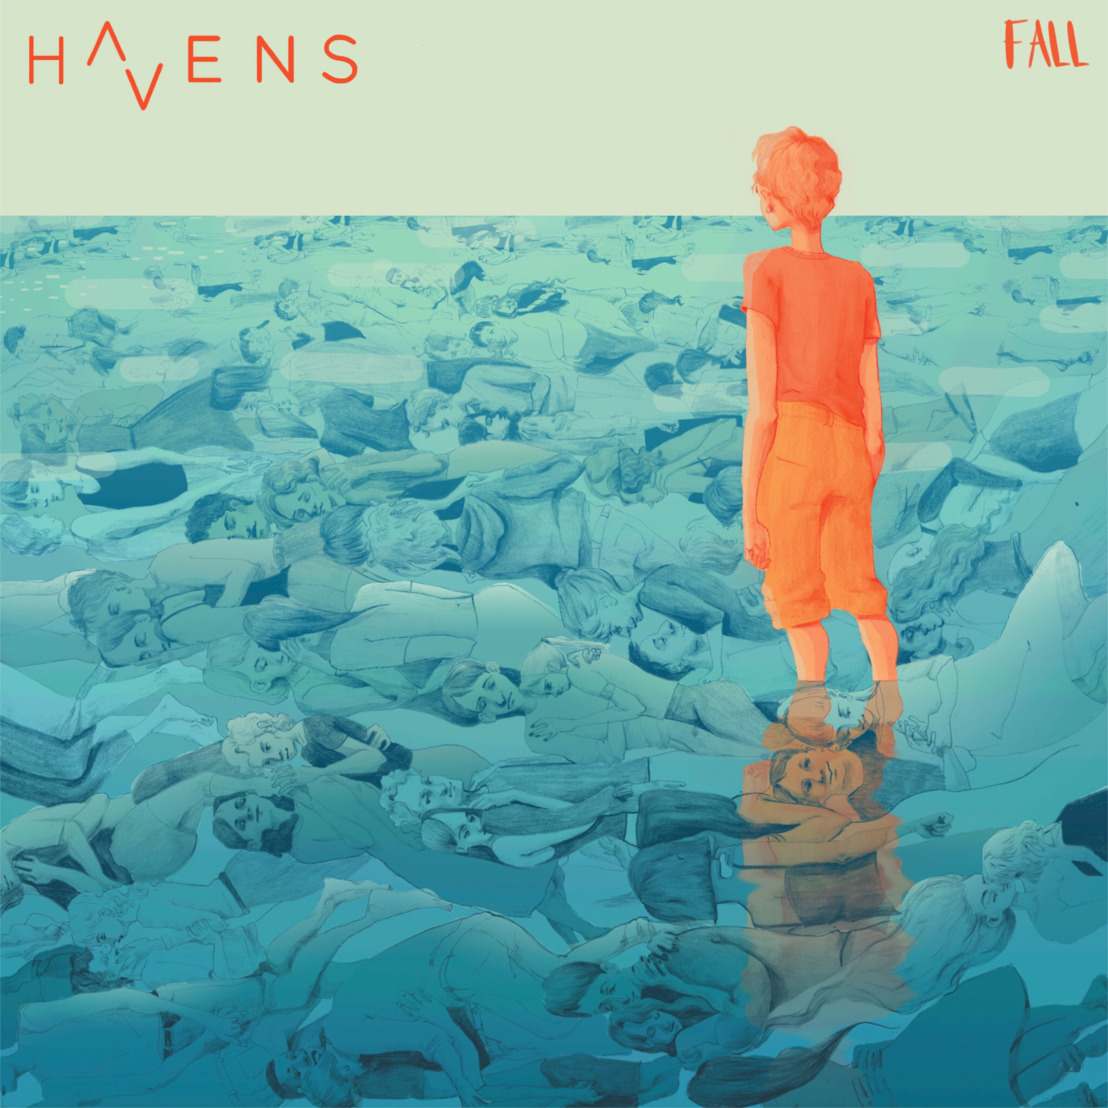 "INDIE ROCK ARTIST HAVENS KICKS OFF THE AUTUMN SEASON WITH HIS BRAND NEW SINGLE ""FALL"" RECORDED WITH AWARD-WINNING ARKELLS DRUMMER, TIM OXFORD"